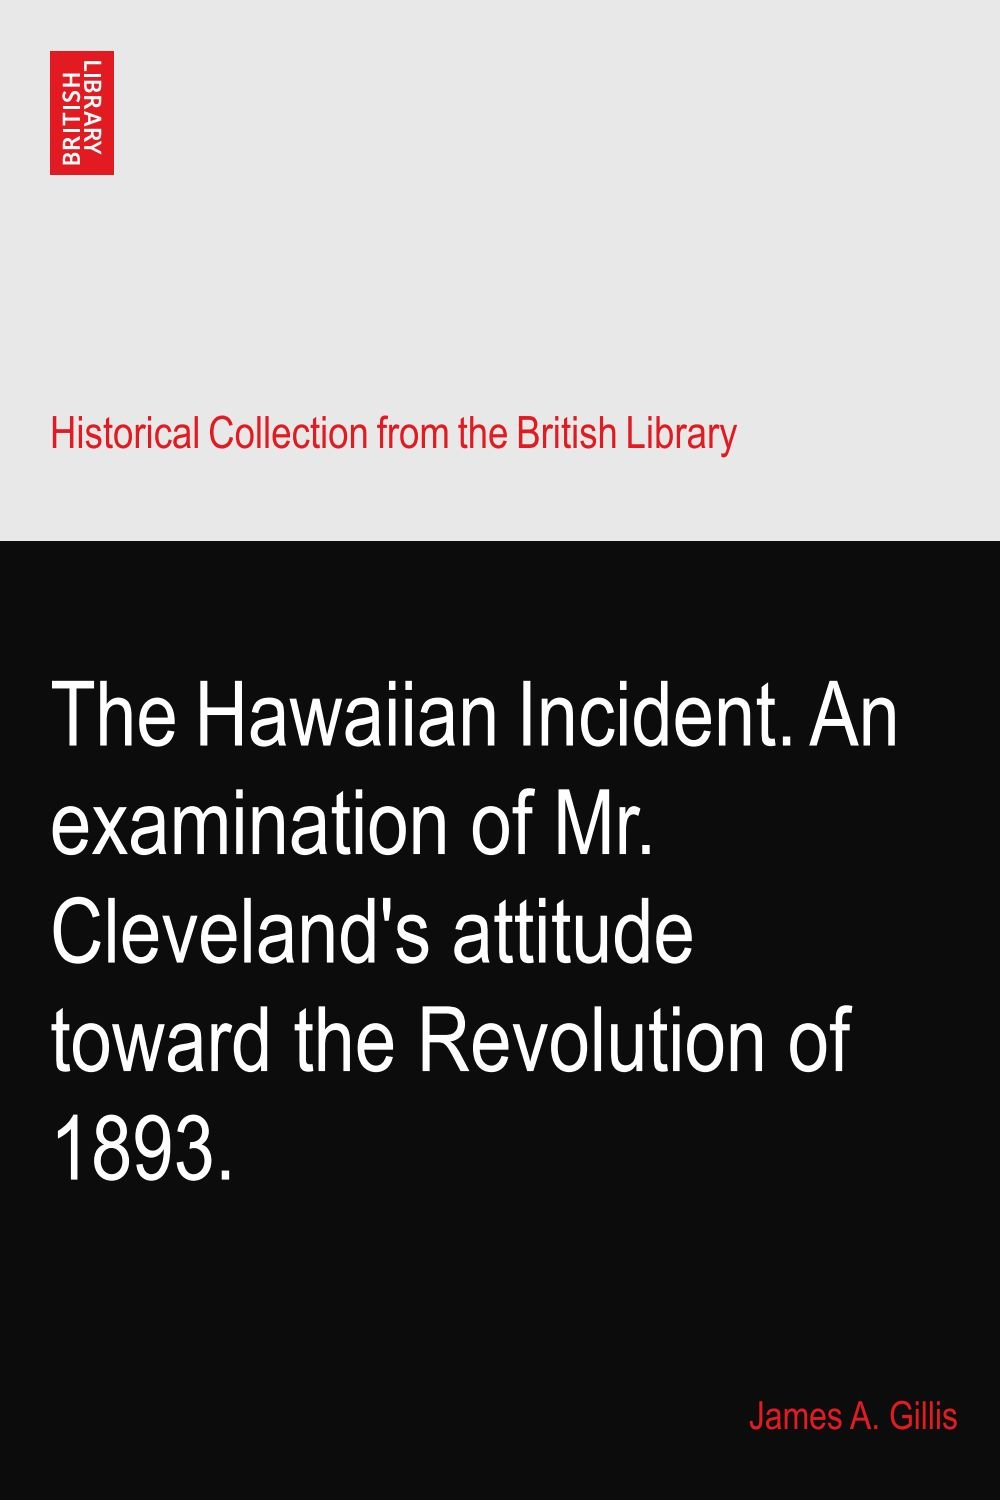 Download The Hawaiian Incident. An examination of Mr. Cleveland's attitude toward the Revolution of 1893. PDF